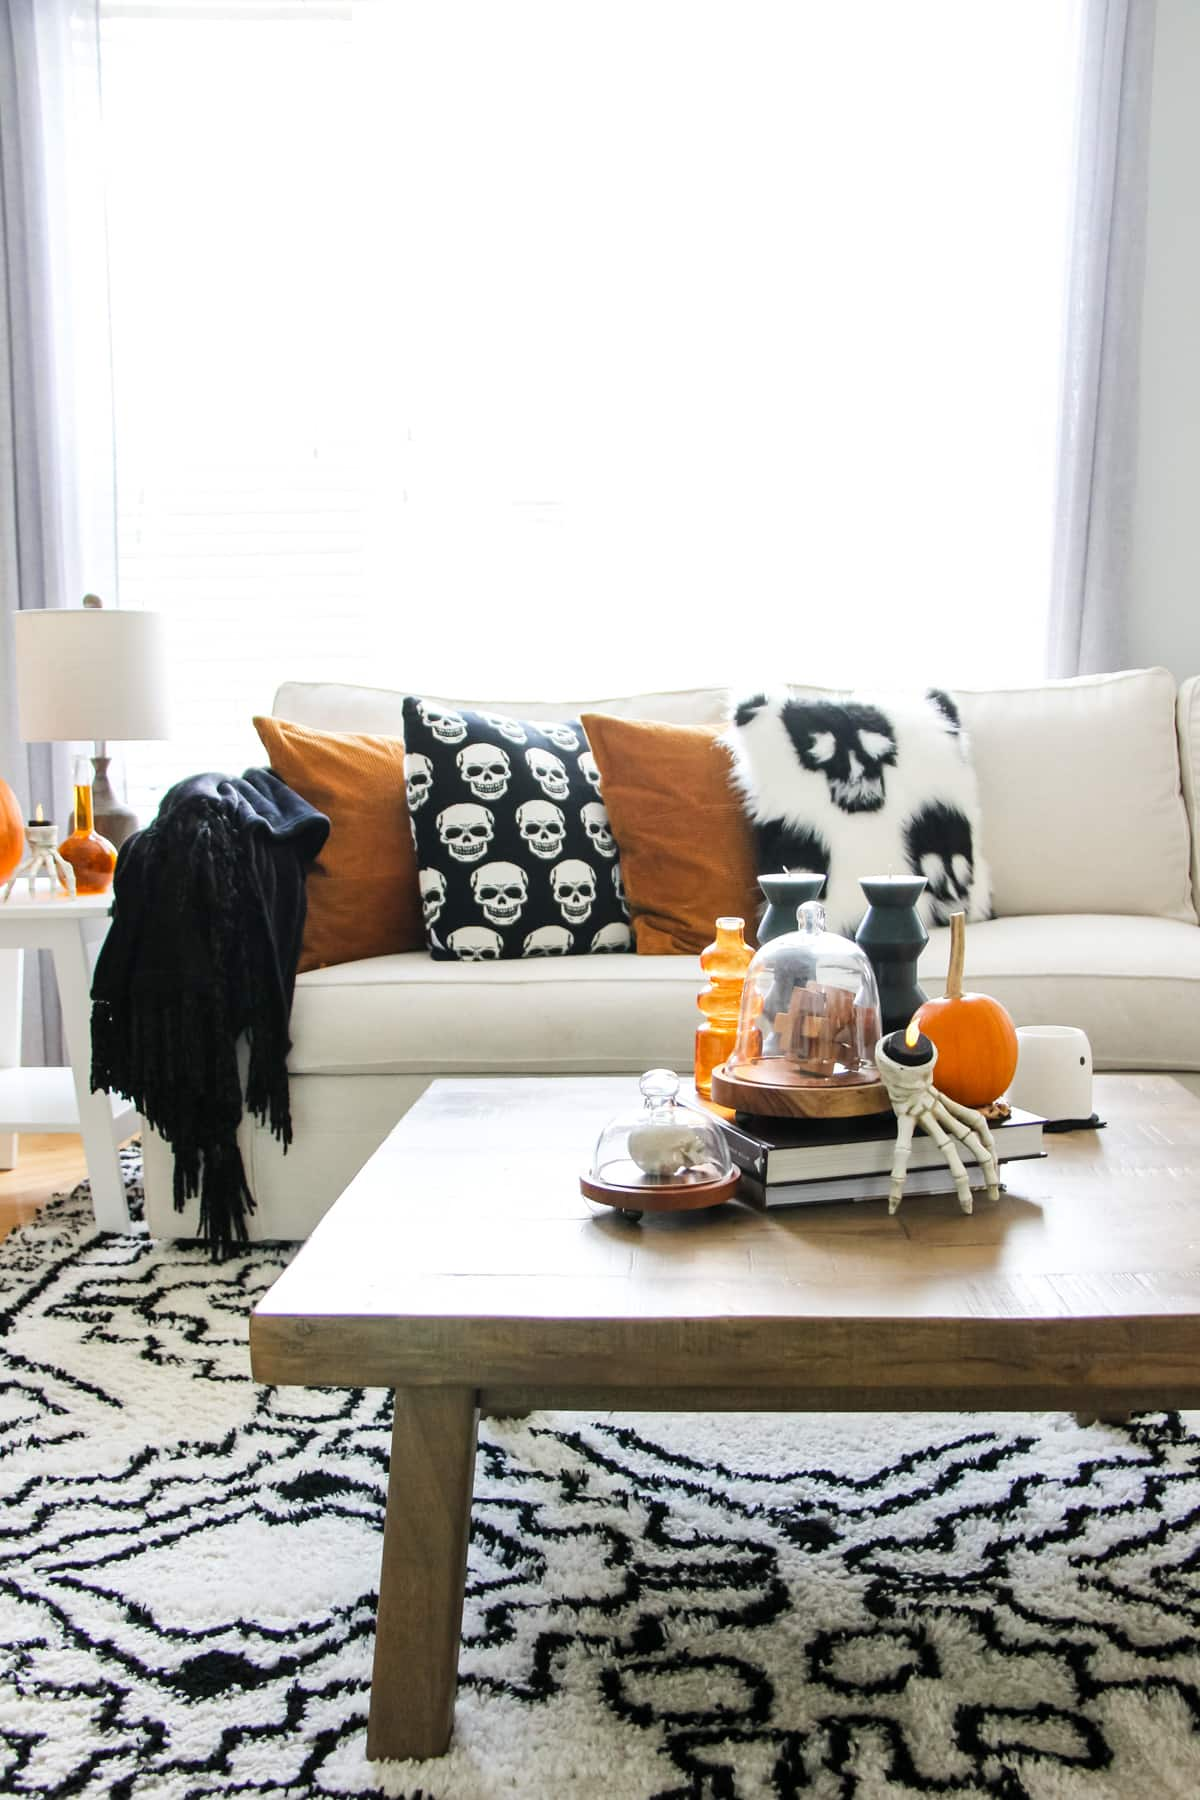 a cream coloured couch with black and white skull pillows and burnt orange pillows. in the forefront is a wooden coffee table filled with Halloween decorations